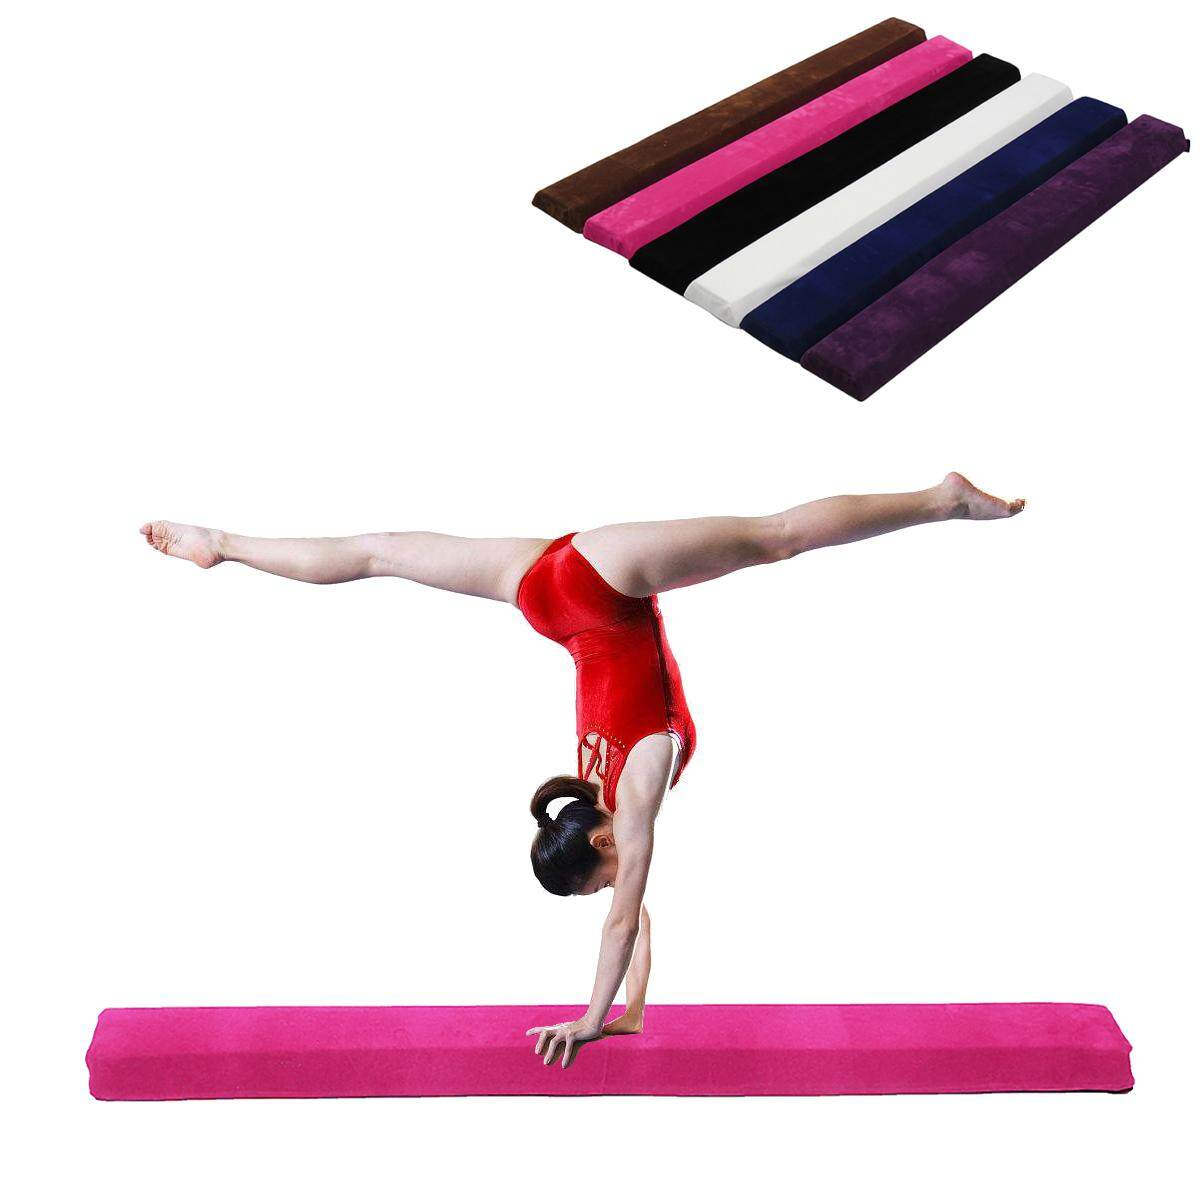 【free Shipping + Flash Deal】115x10x10cm Balance Beam Gymnastics Training Sport Practice Injuries Tumble Mat By Audew.